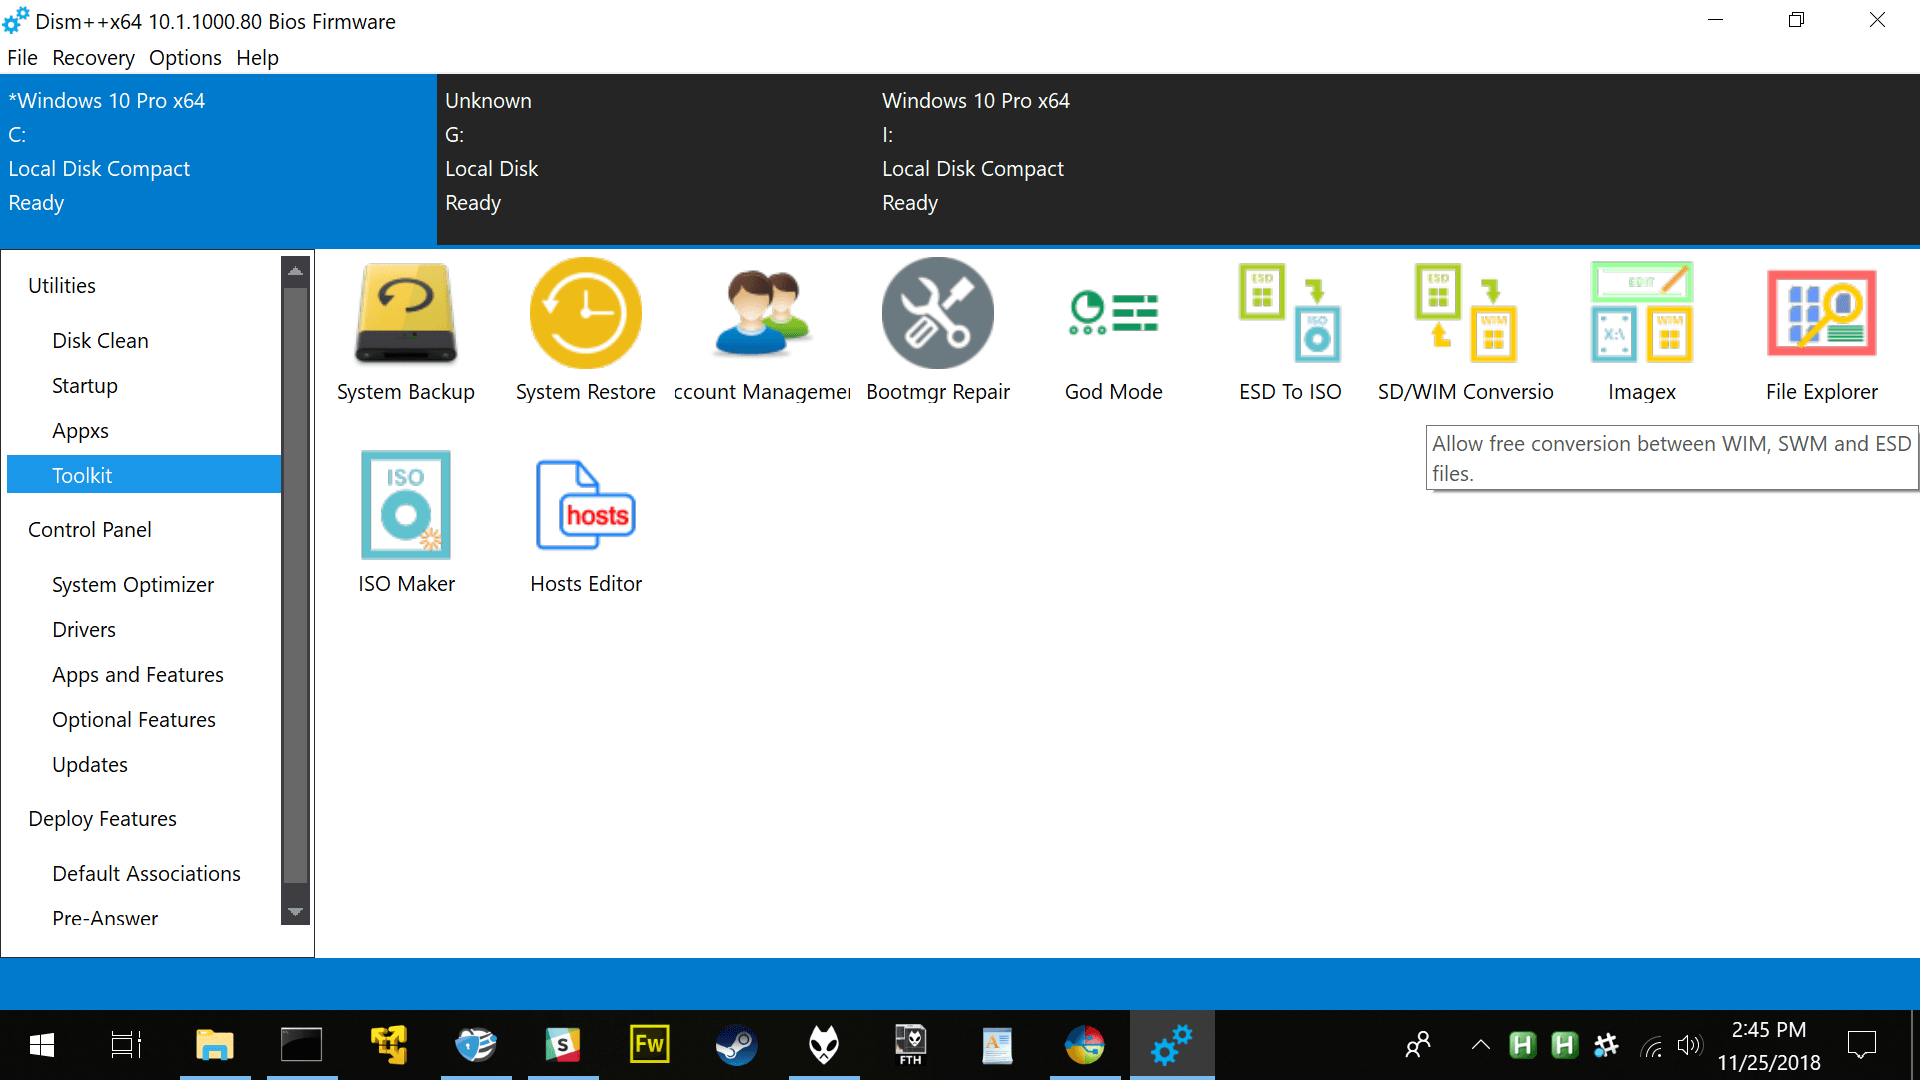 Windows To Go: How to Install and Run Windows 10 from a USB